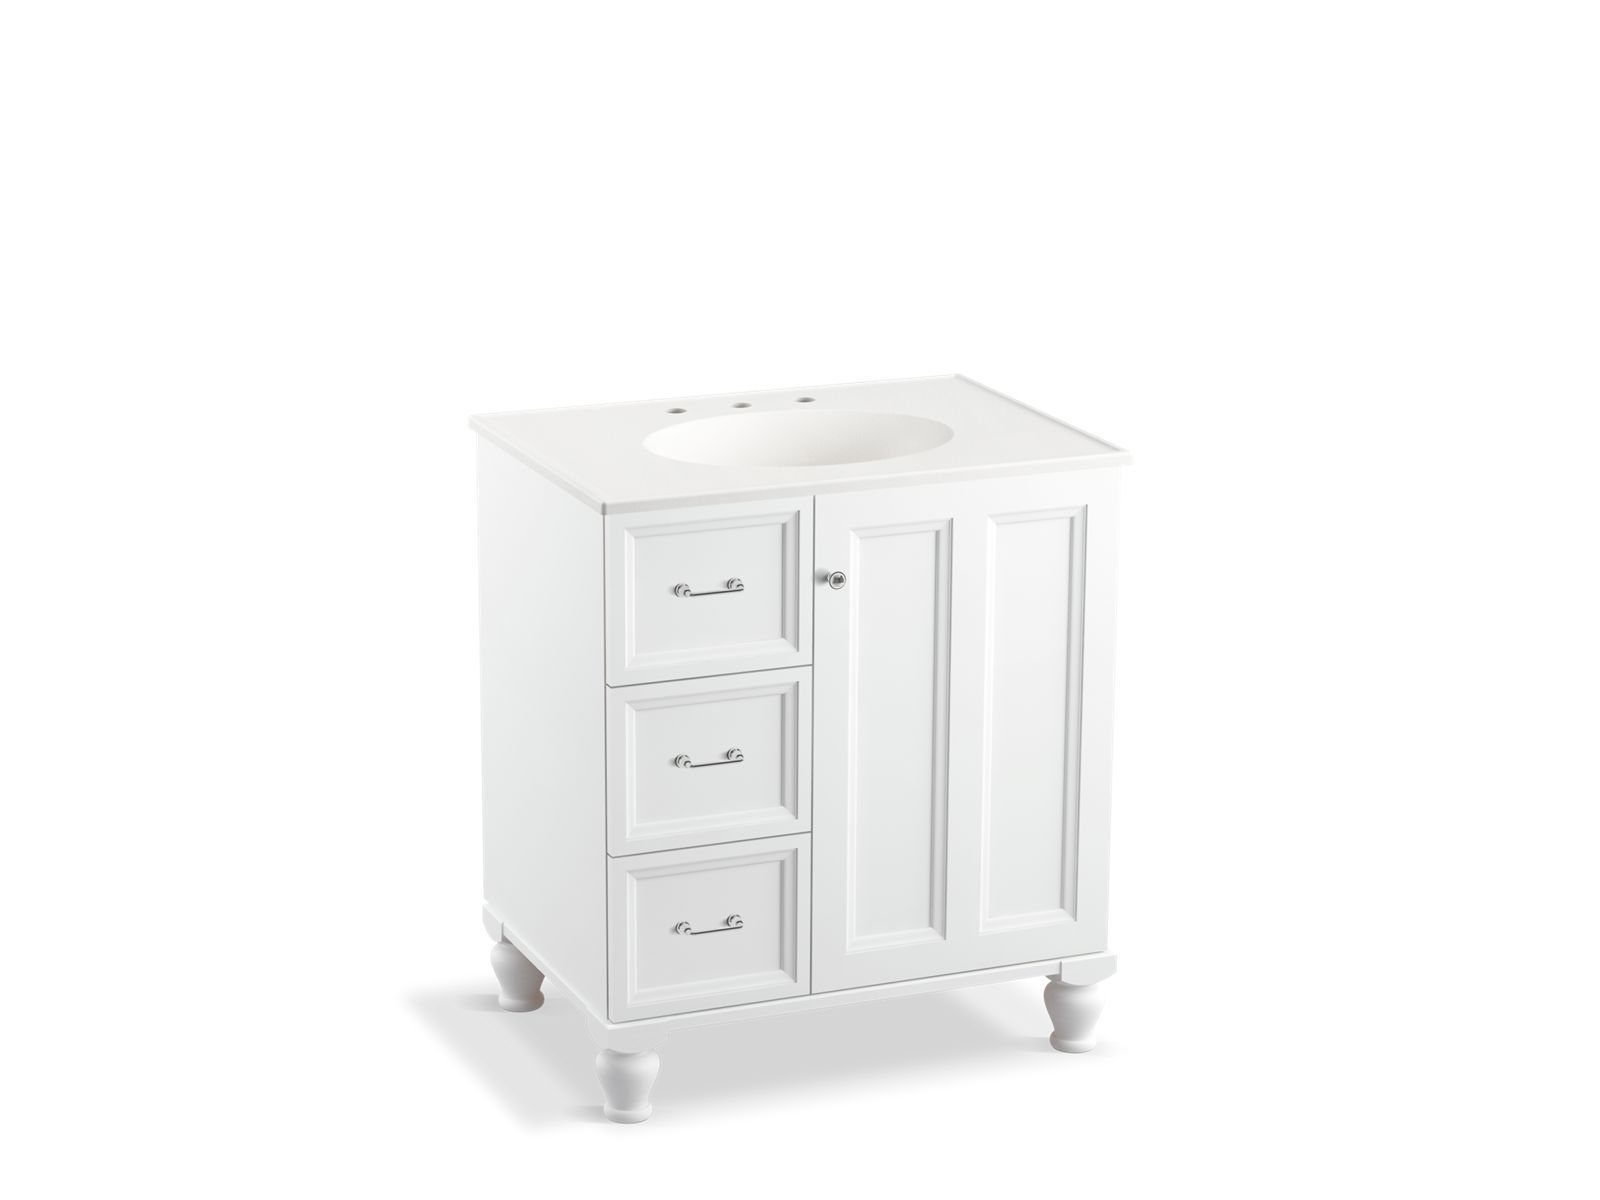 30 Vanity With Drawers K 99517 Lgl Damask 30 Inch Vanity With Legs 1 Door 3 Drawers